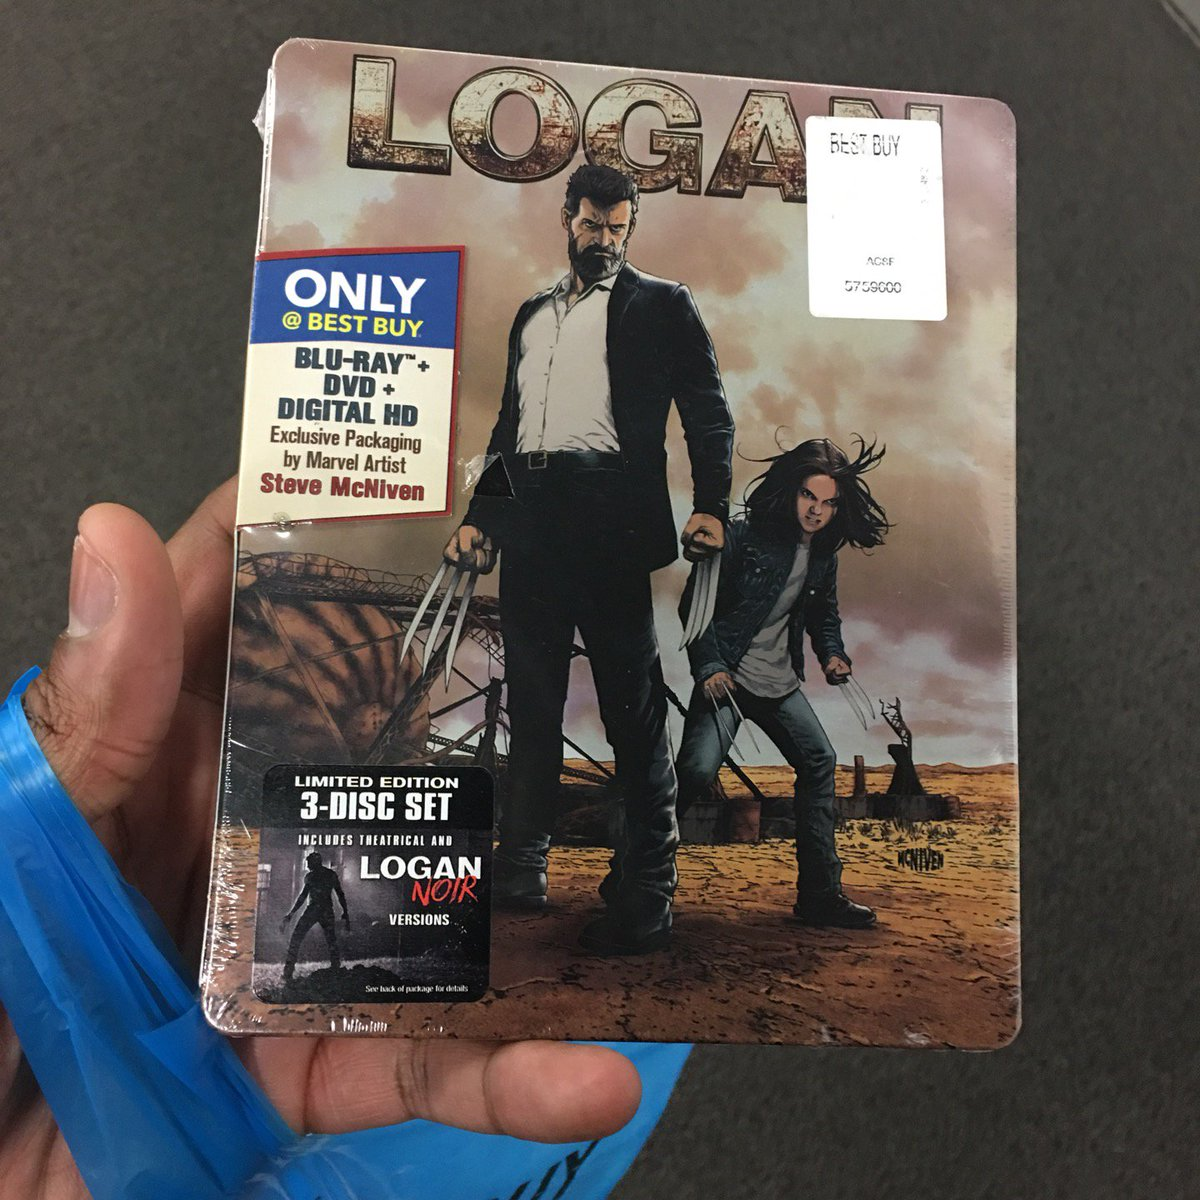 best buy on twitter we got ourselves an x men fan twitter